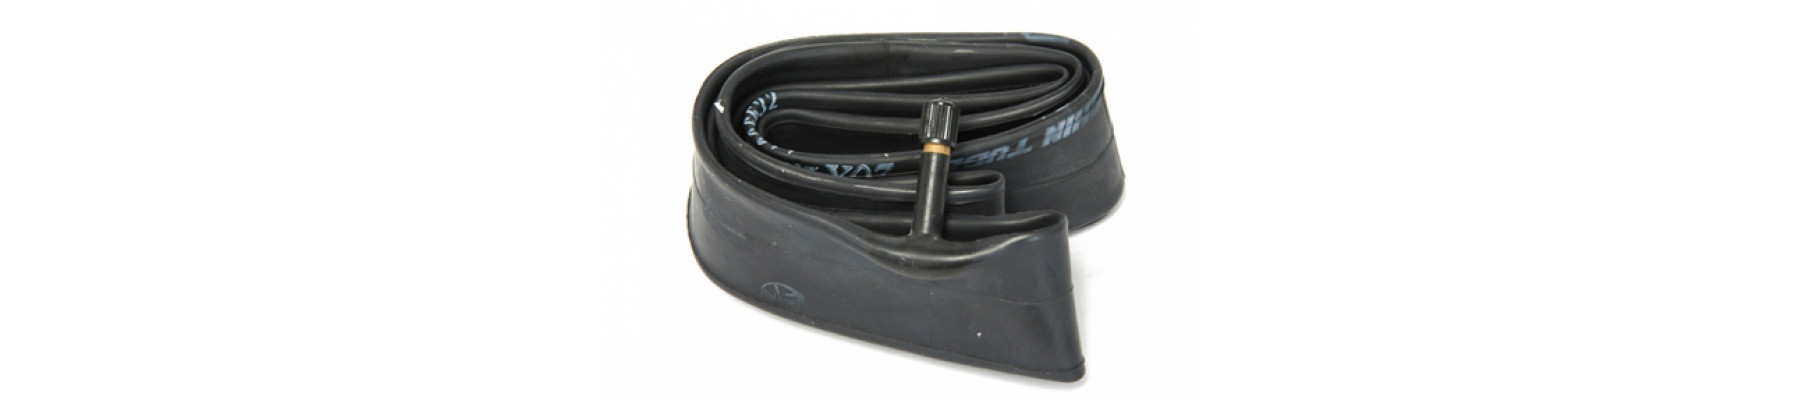 Salt inner tube 20inch Black